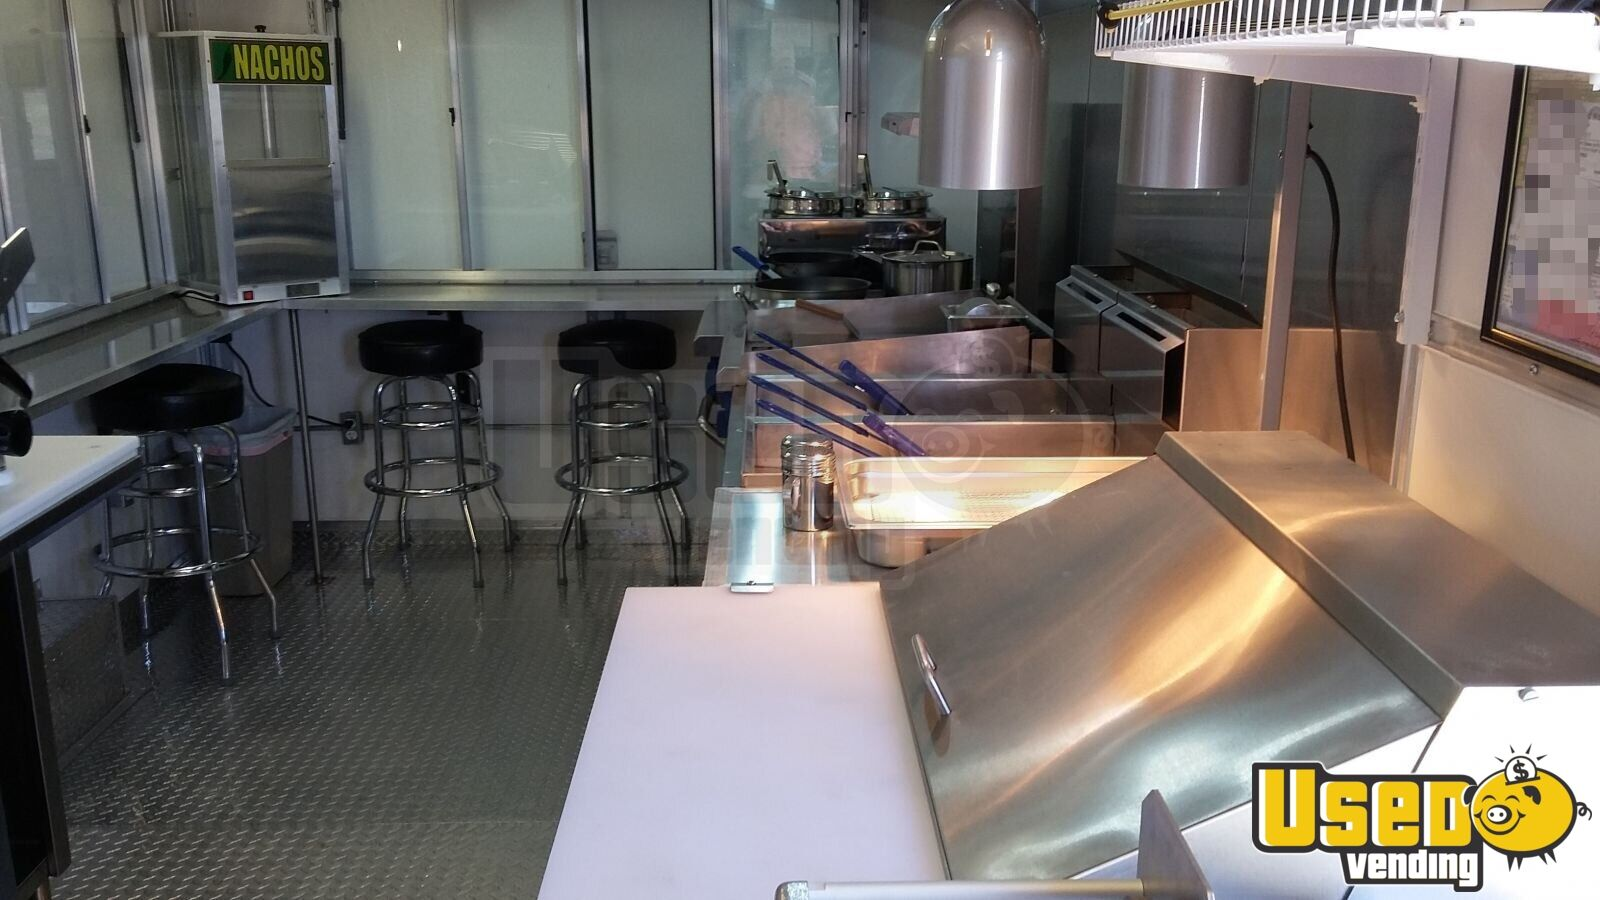 2015 Bestbilt Kitchen Food Trailer Stainless Steel Wall Covers Texas for Sale - 5